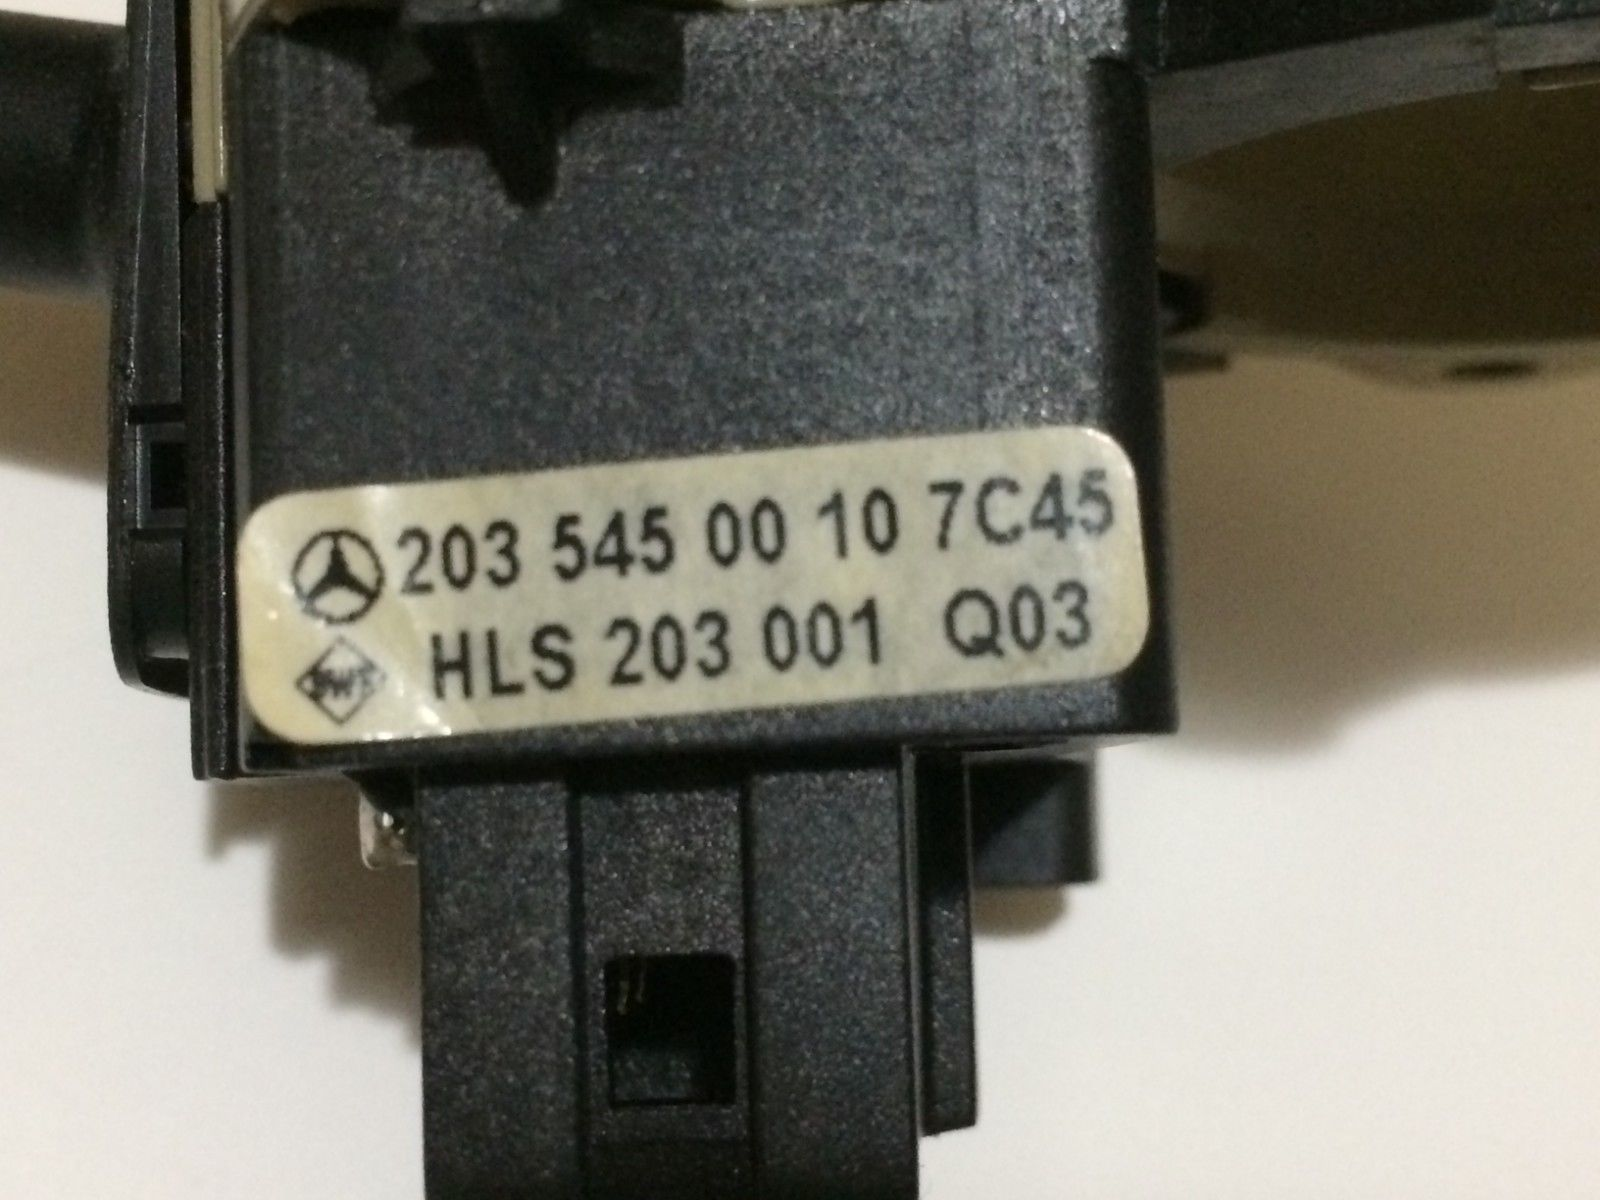 01 02 03 MERCEDES BENZ C320 TURN SIGNAL WINDSHIELD WIPER SWITCH OEM 2035450010 2035450010